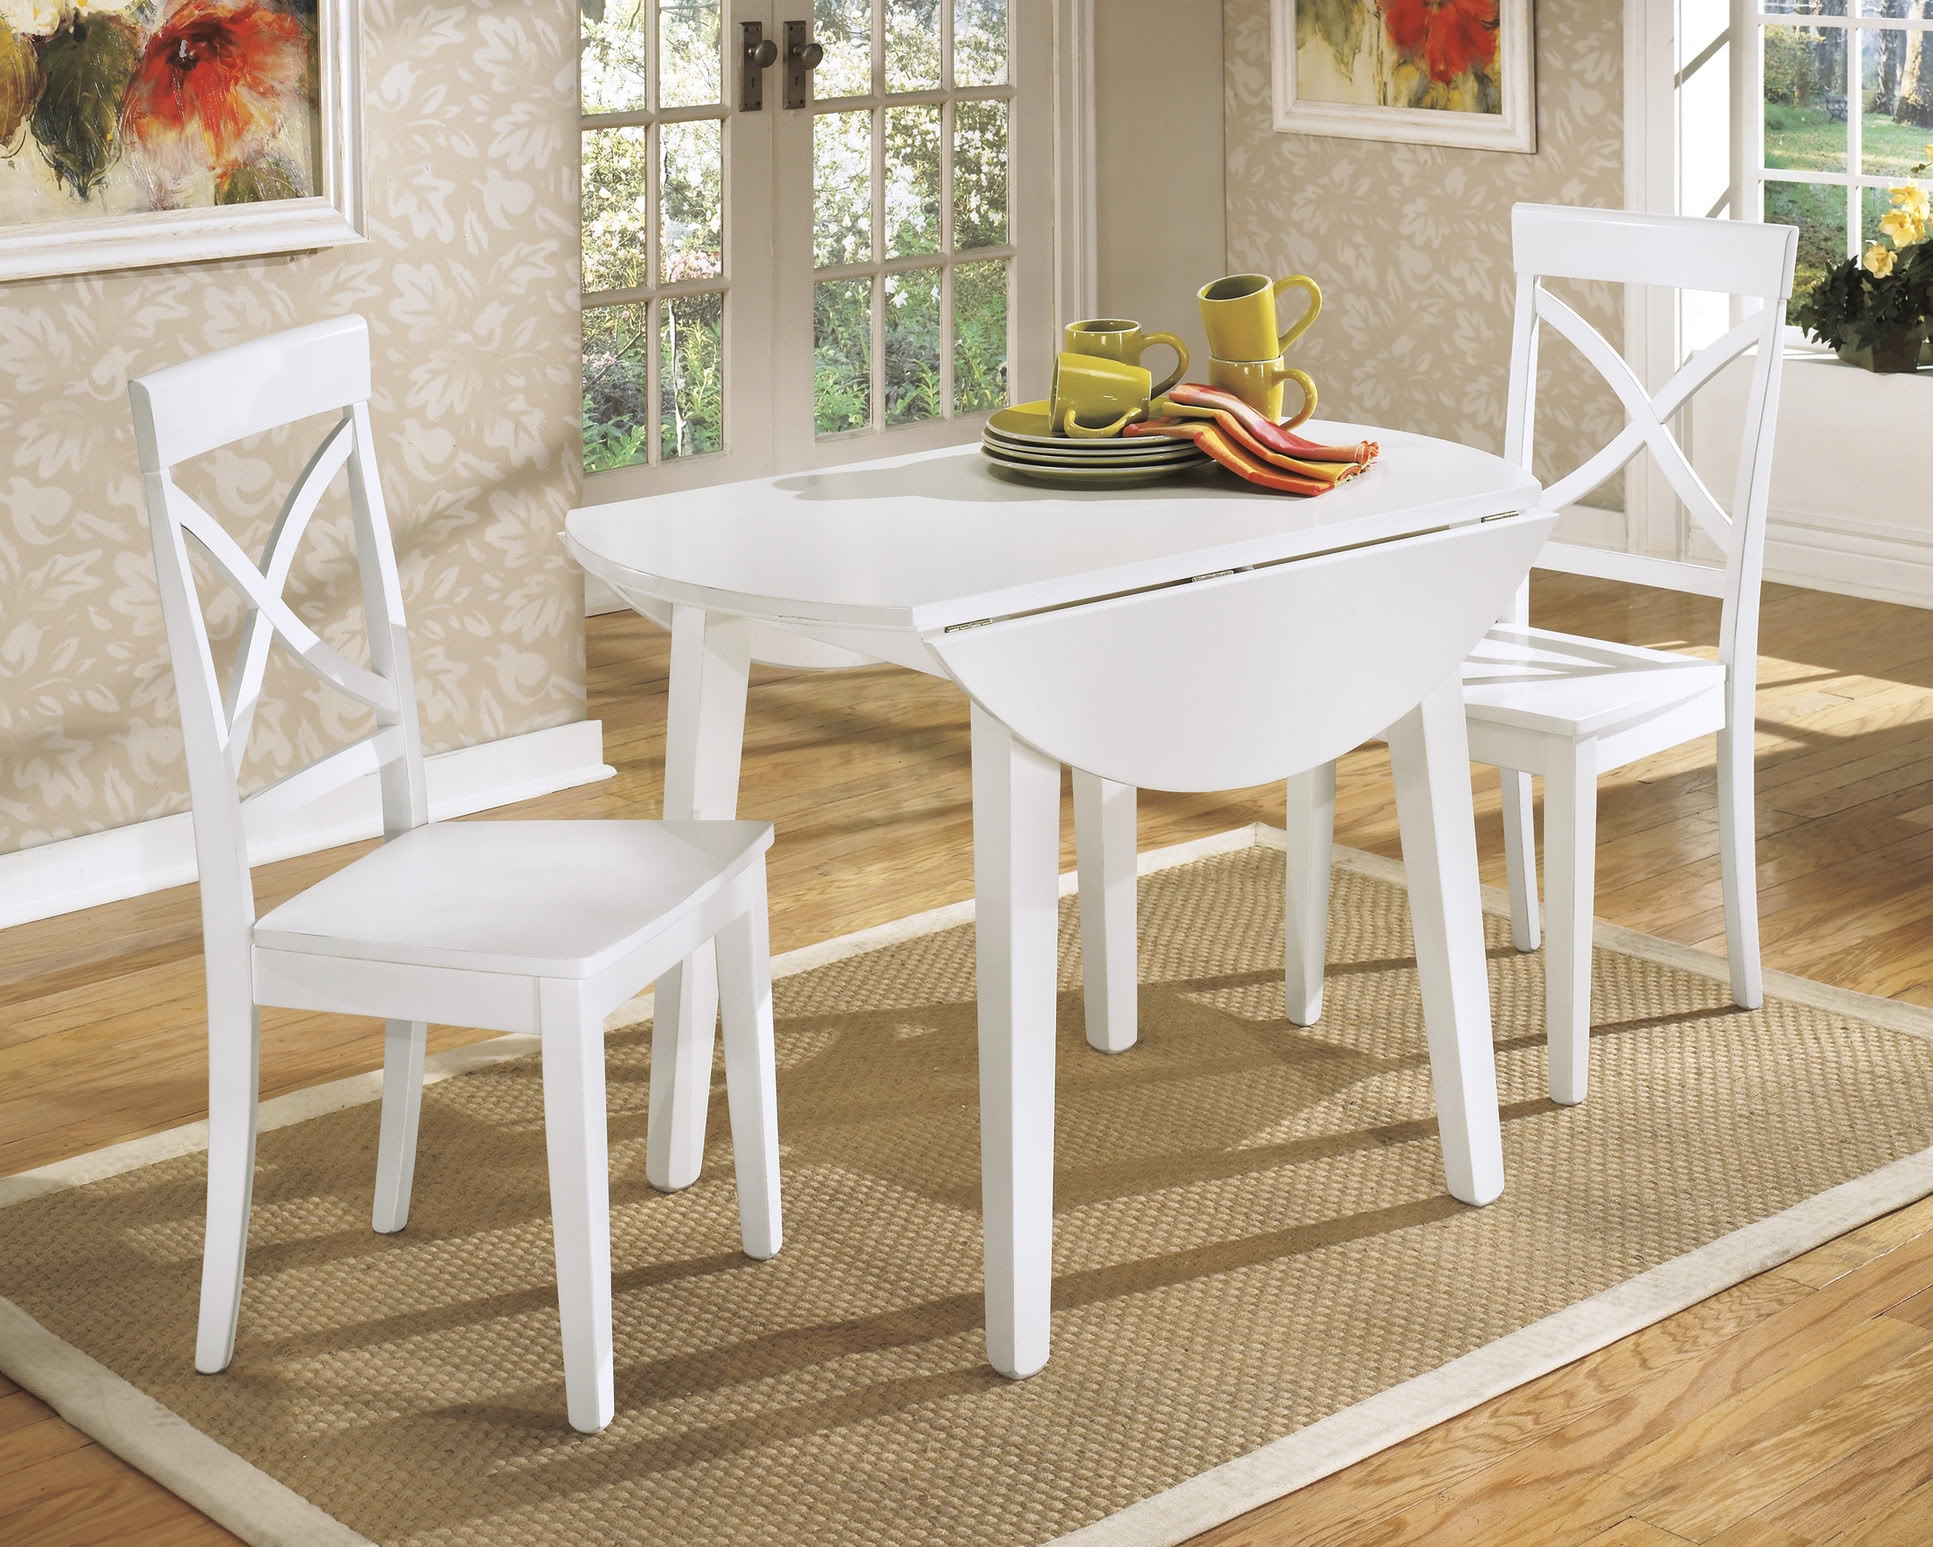 White round kitchen table and chairs design homesfeed for Table salle a manger pliante